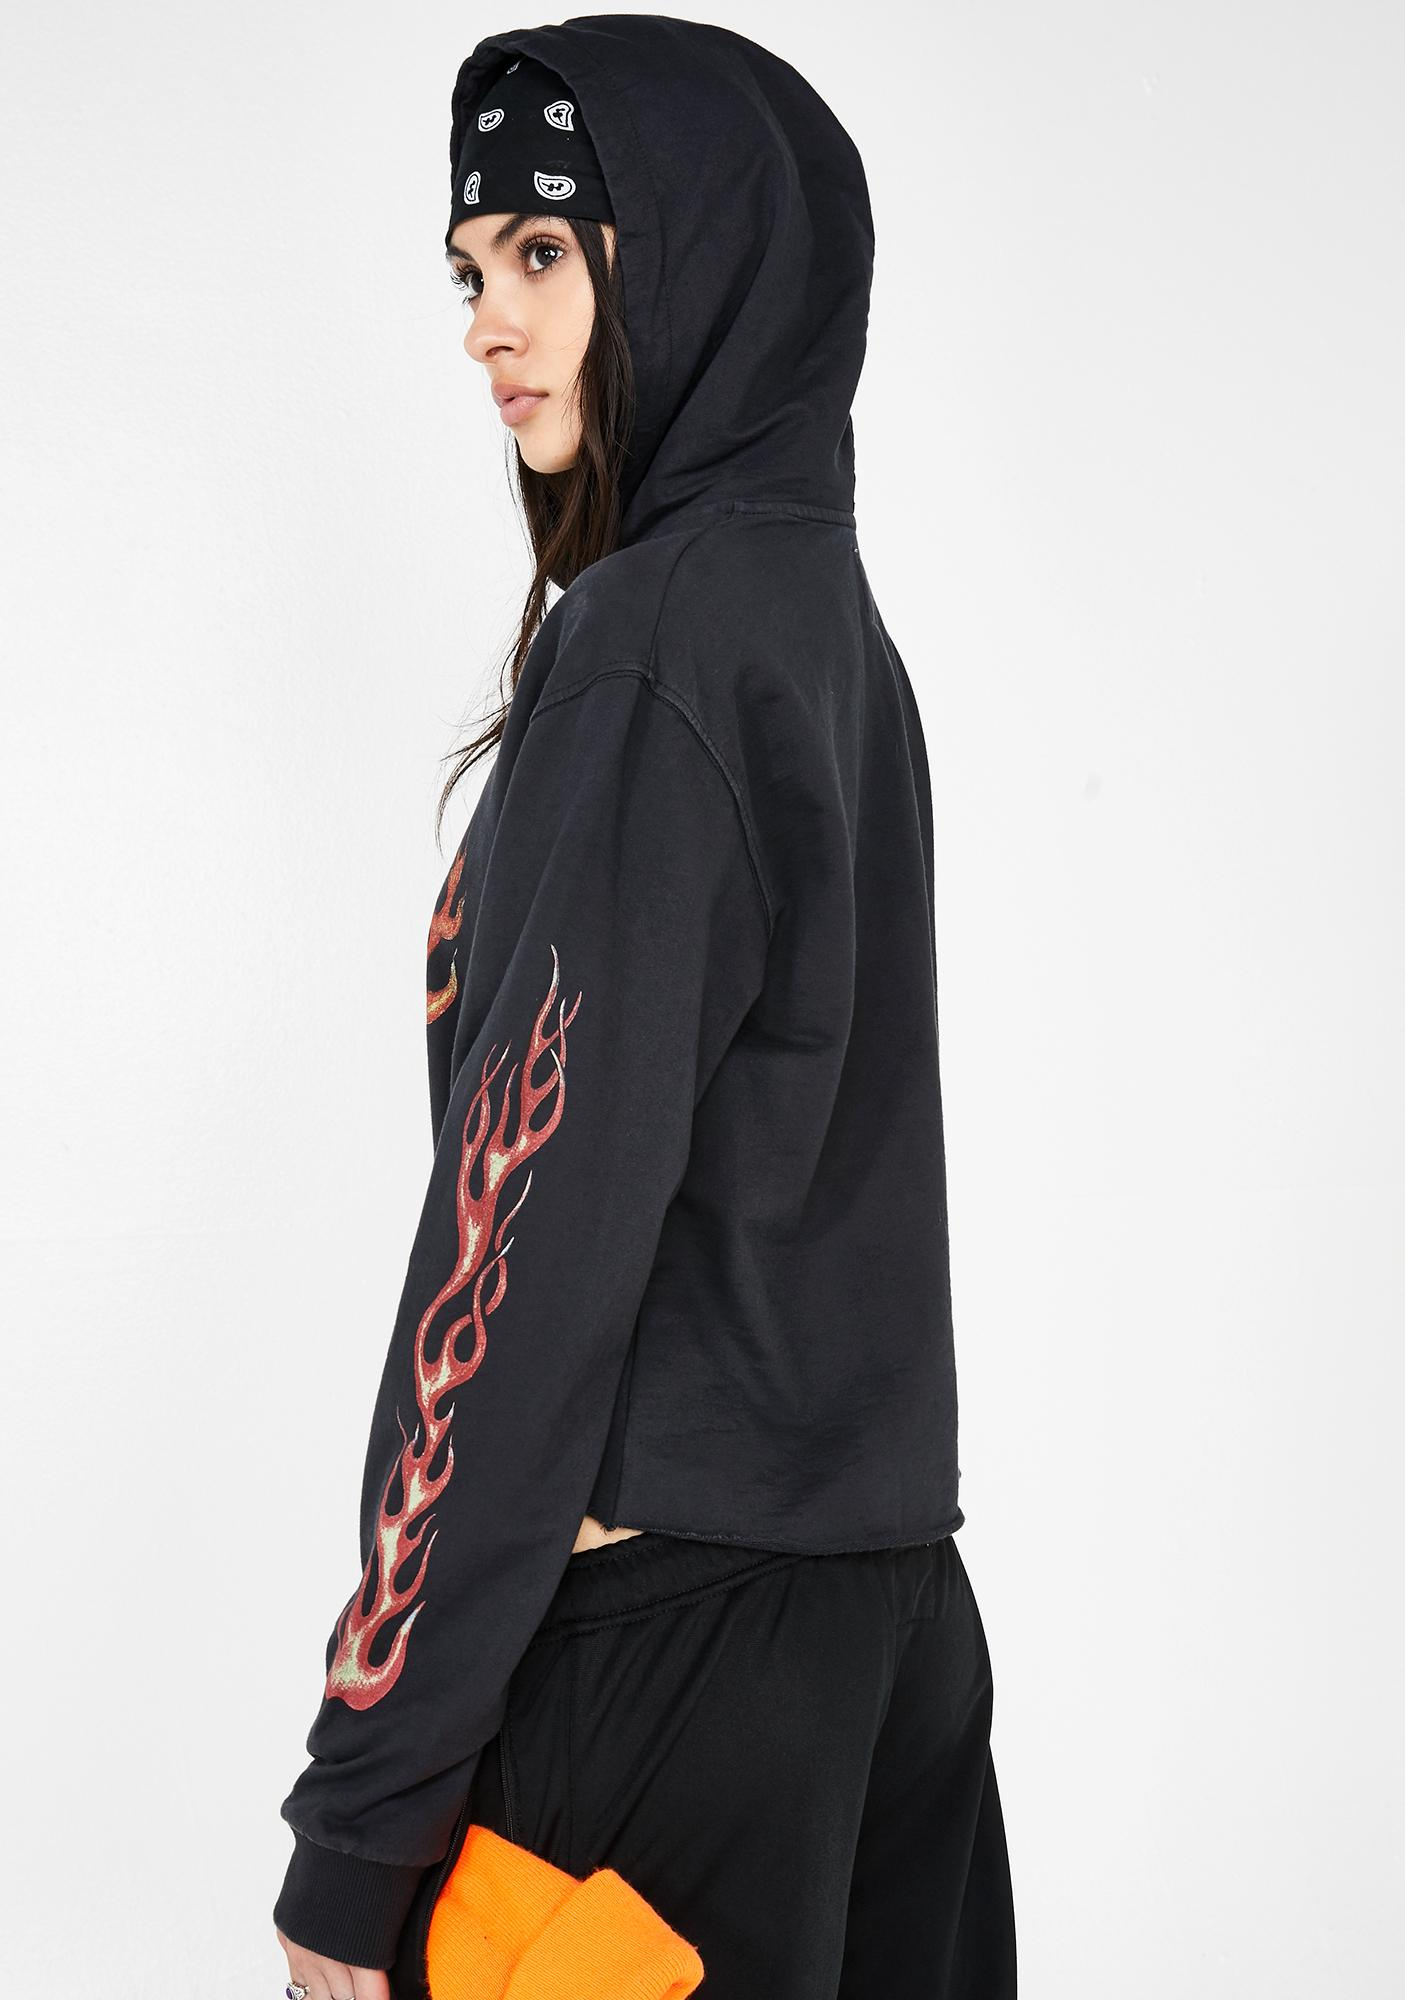 The People VS Occult Cropped Hoodie